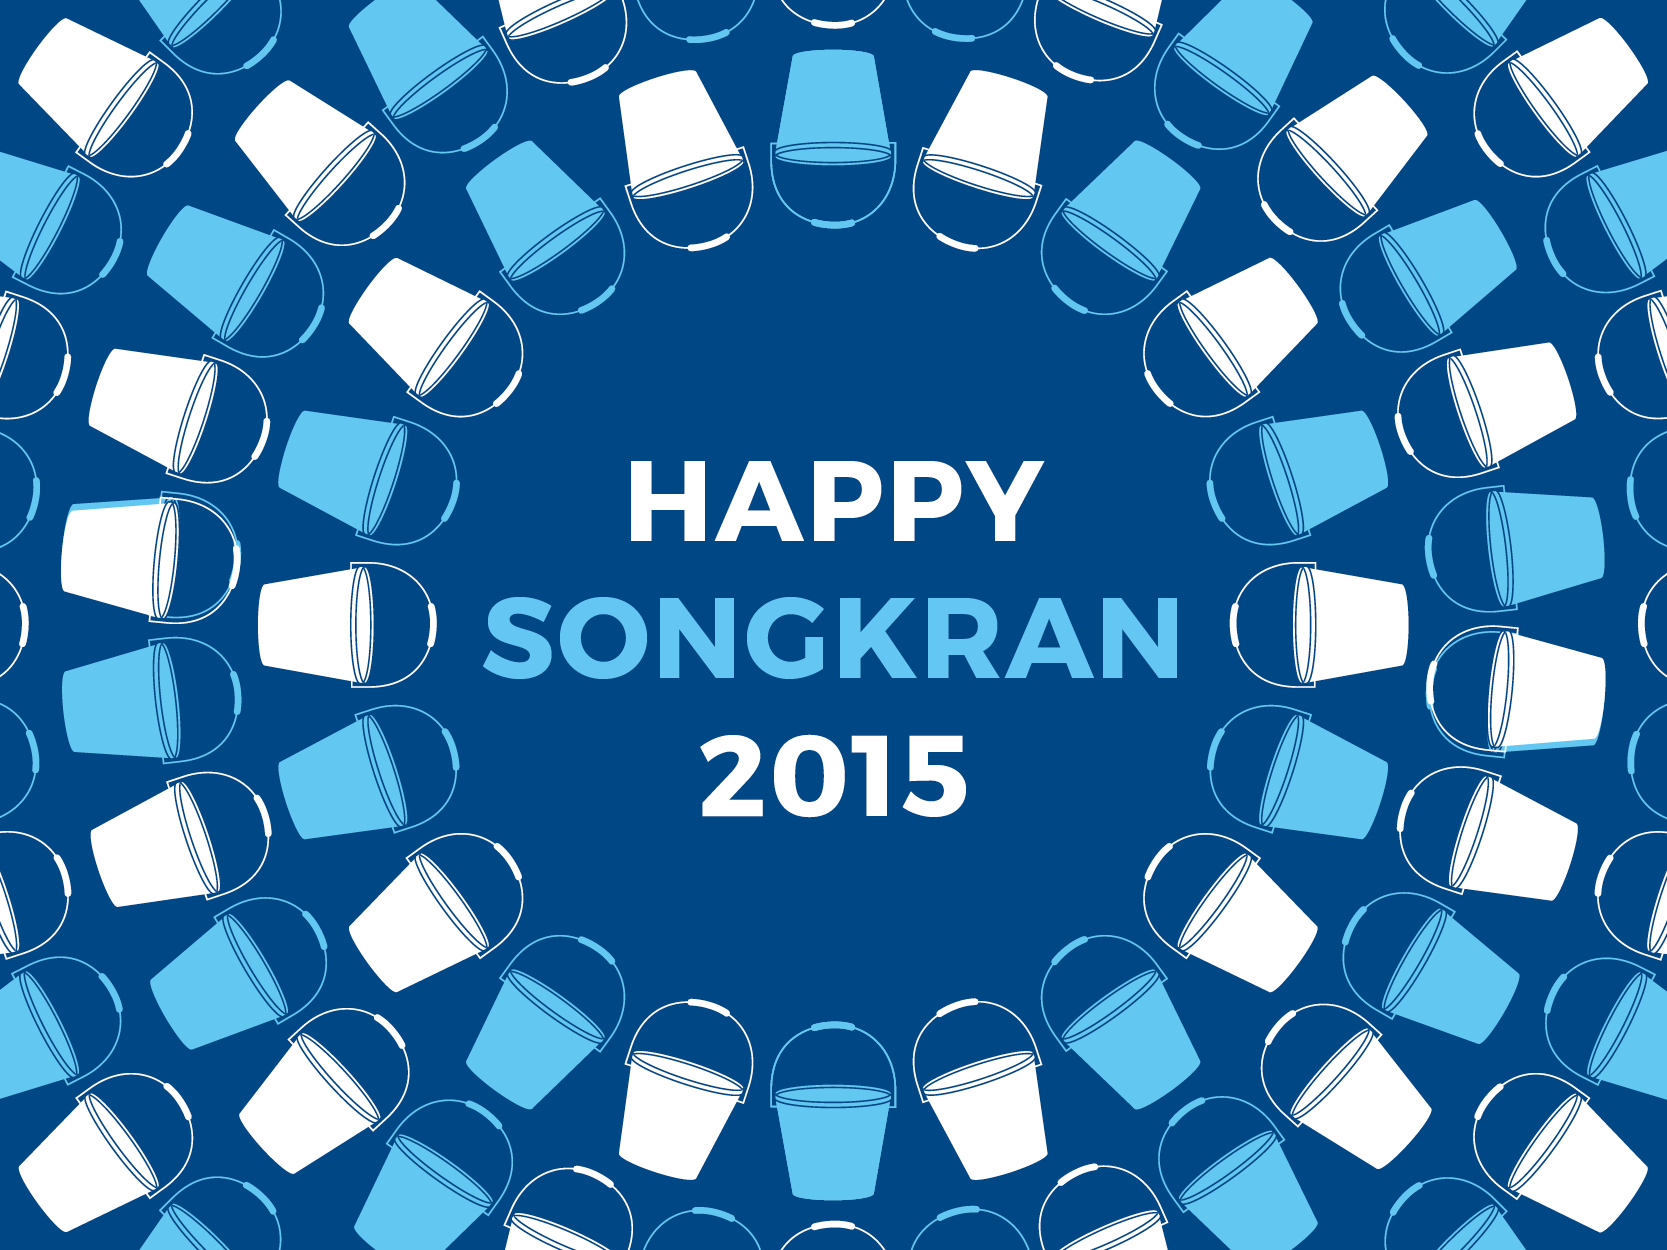 happy-songkran-2015.jpg